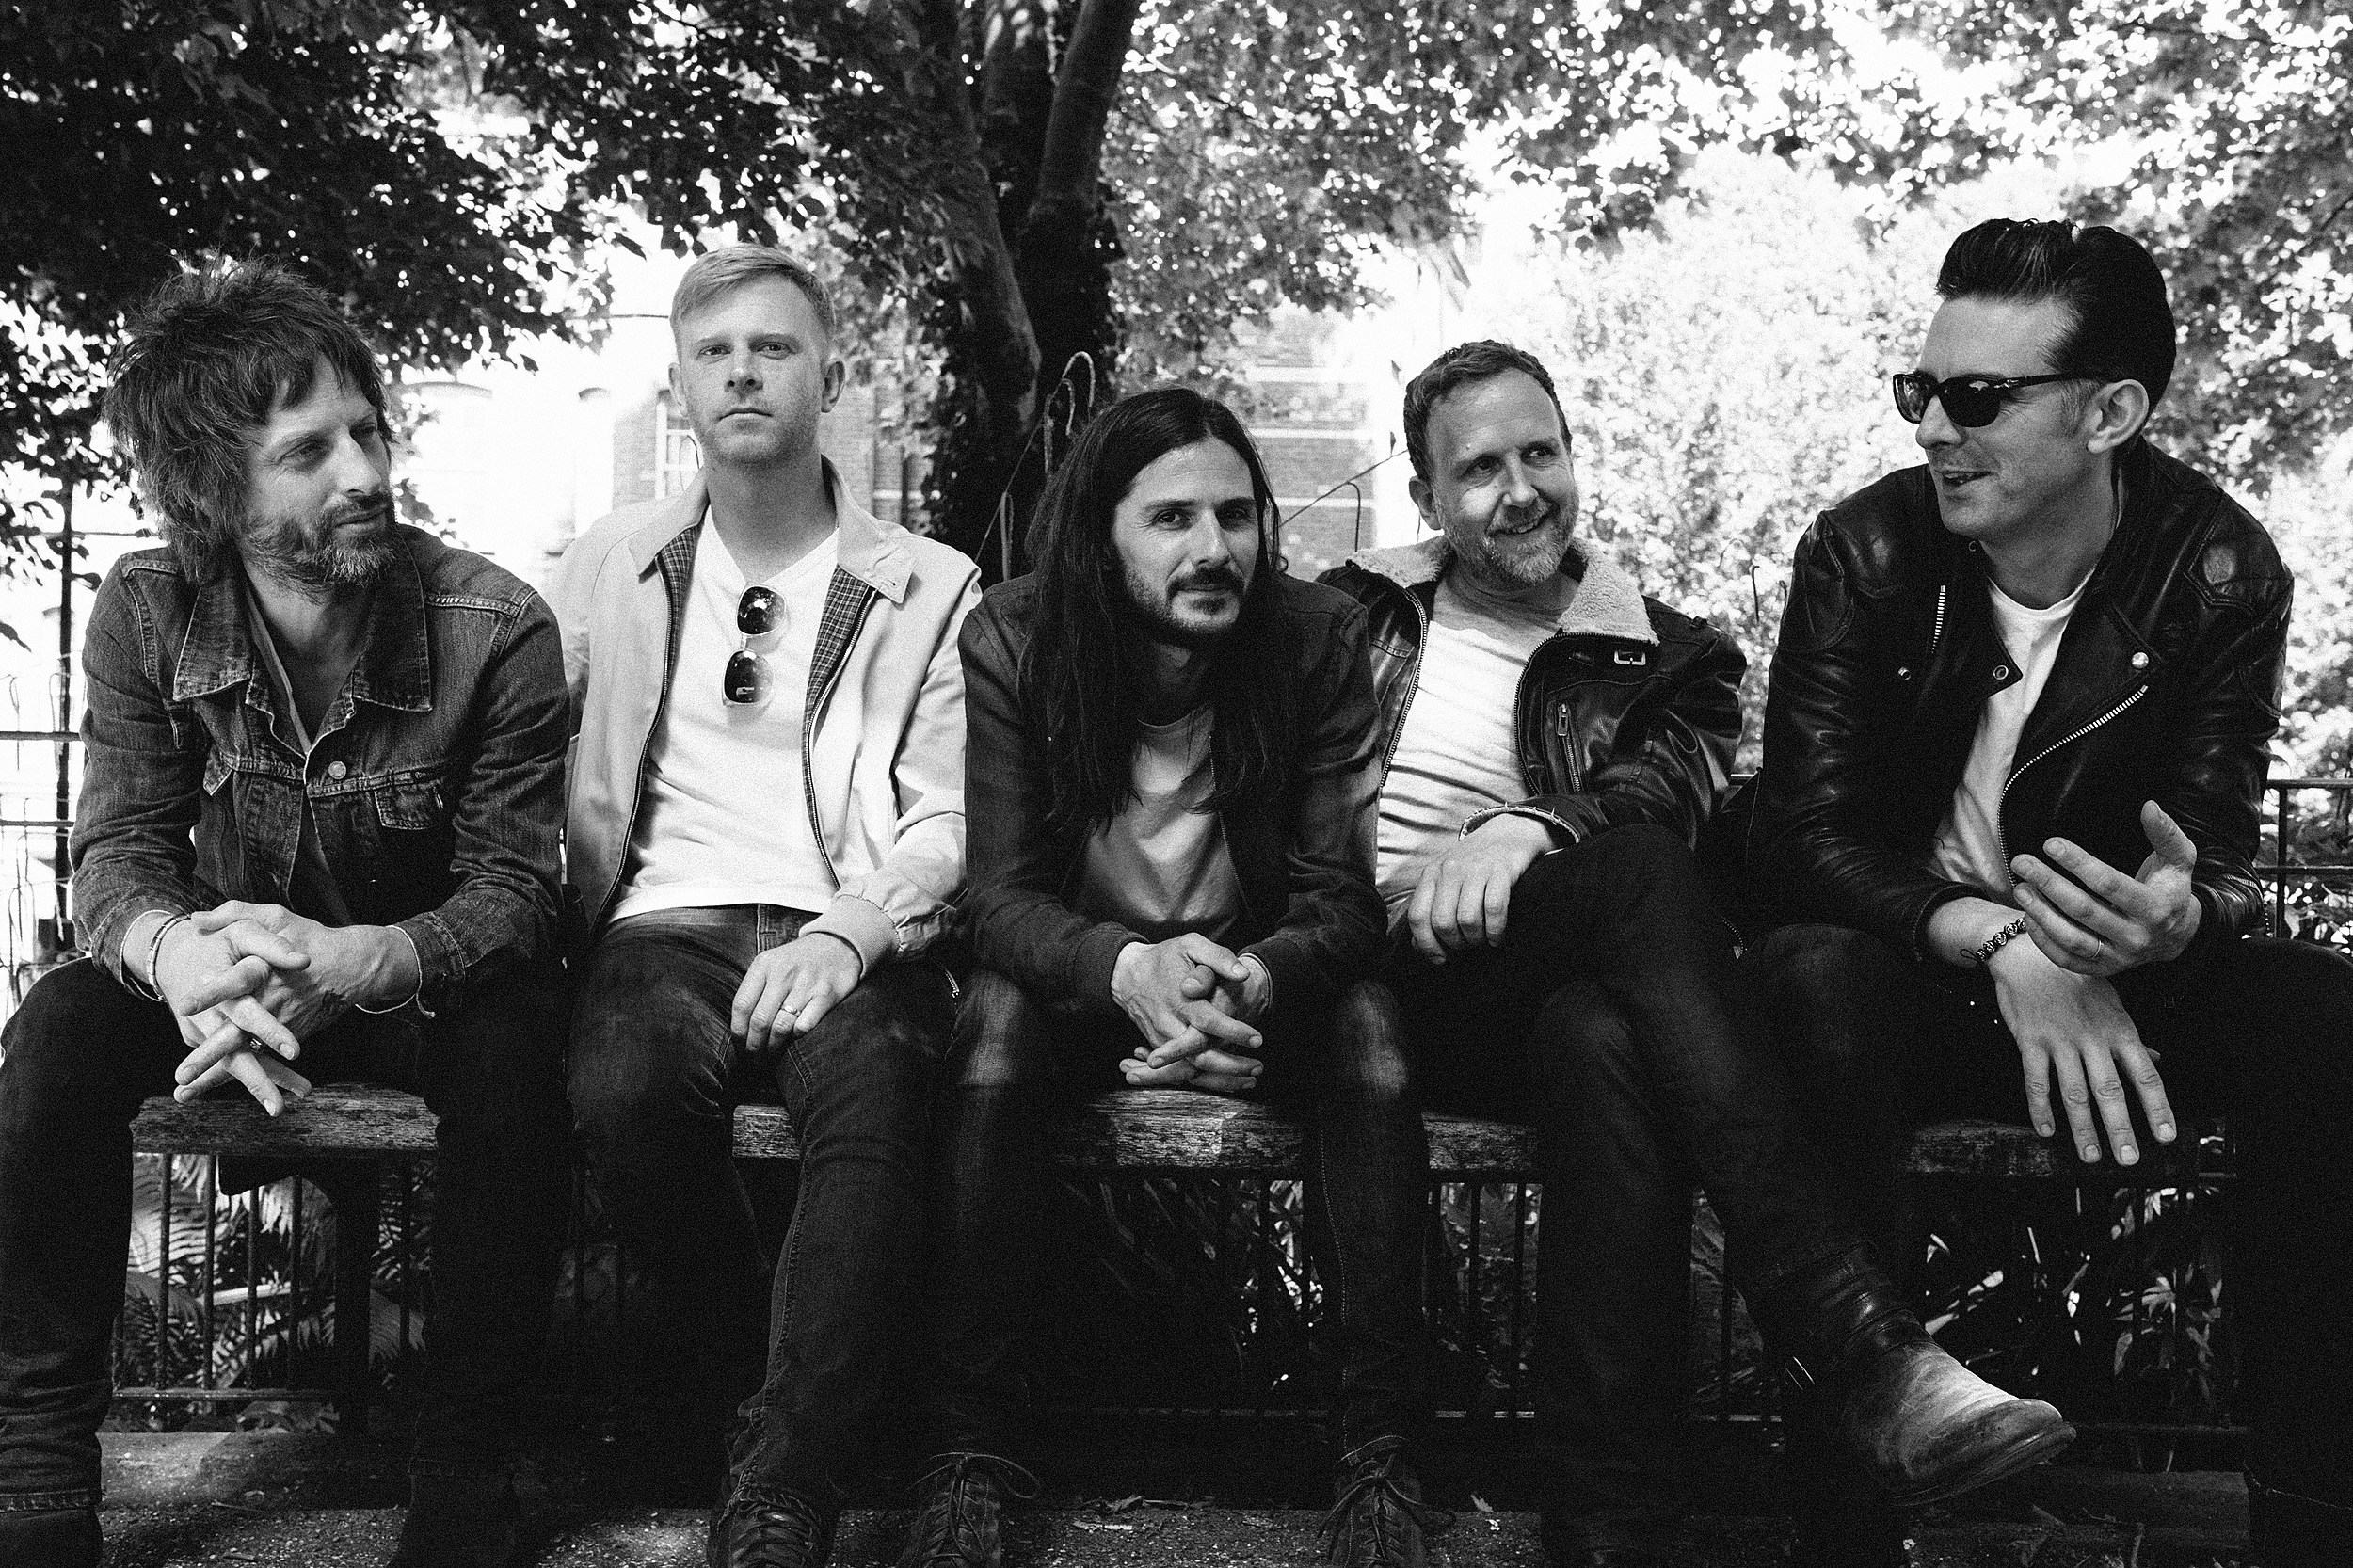 The Temperance Movement: An Older Sound for Newer Generations